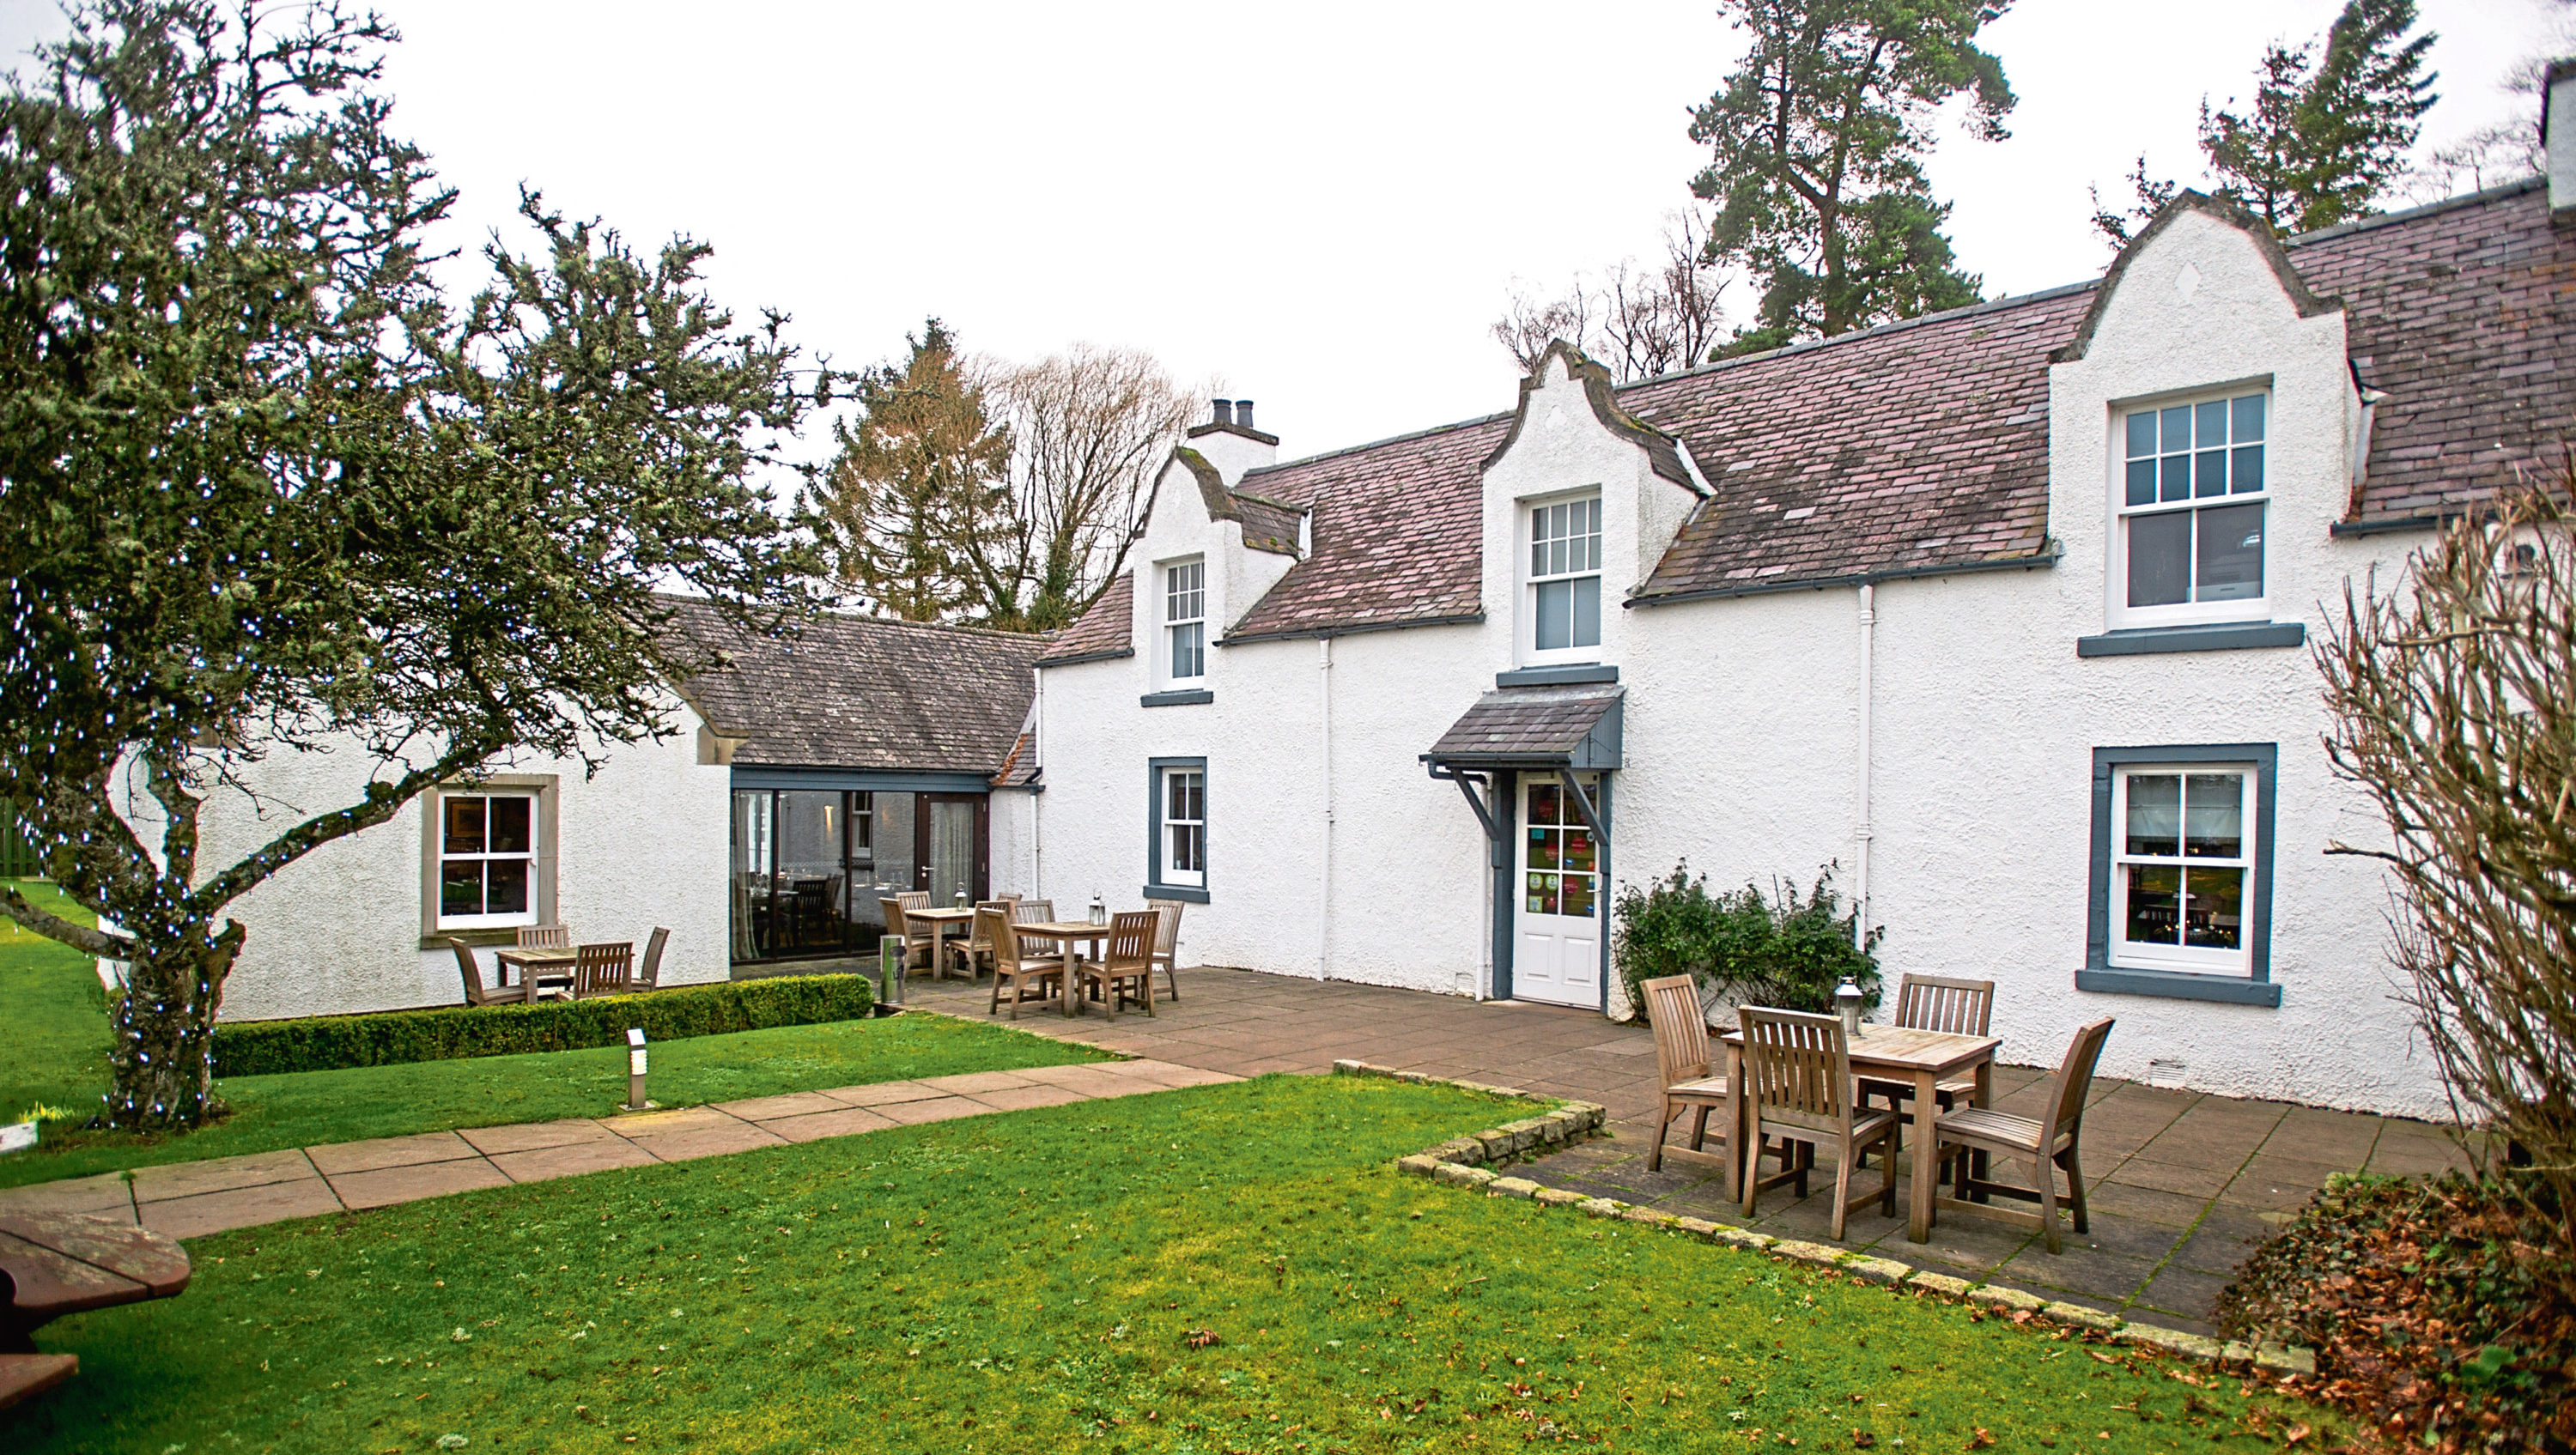 The  Drovers Inn at Memus. Pictures: Kim Cessford.